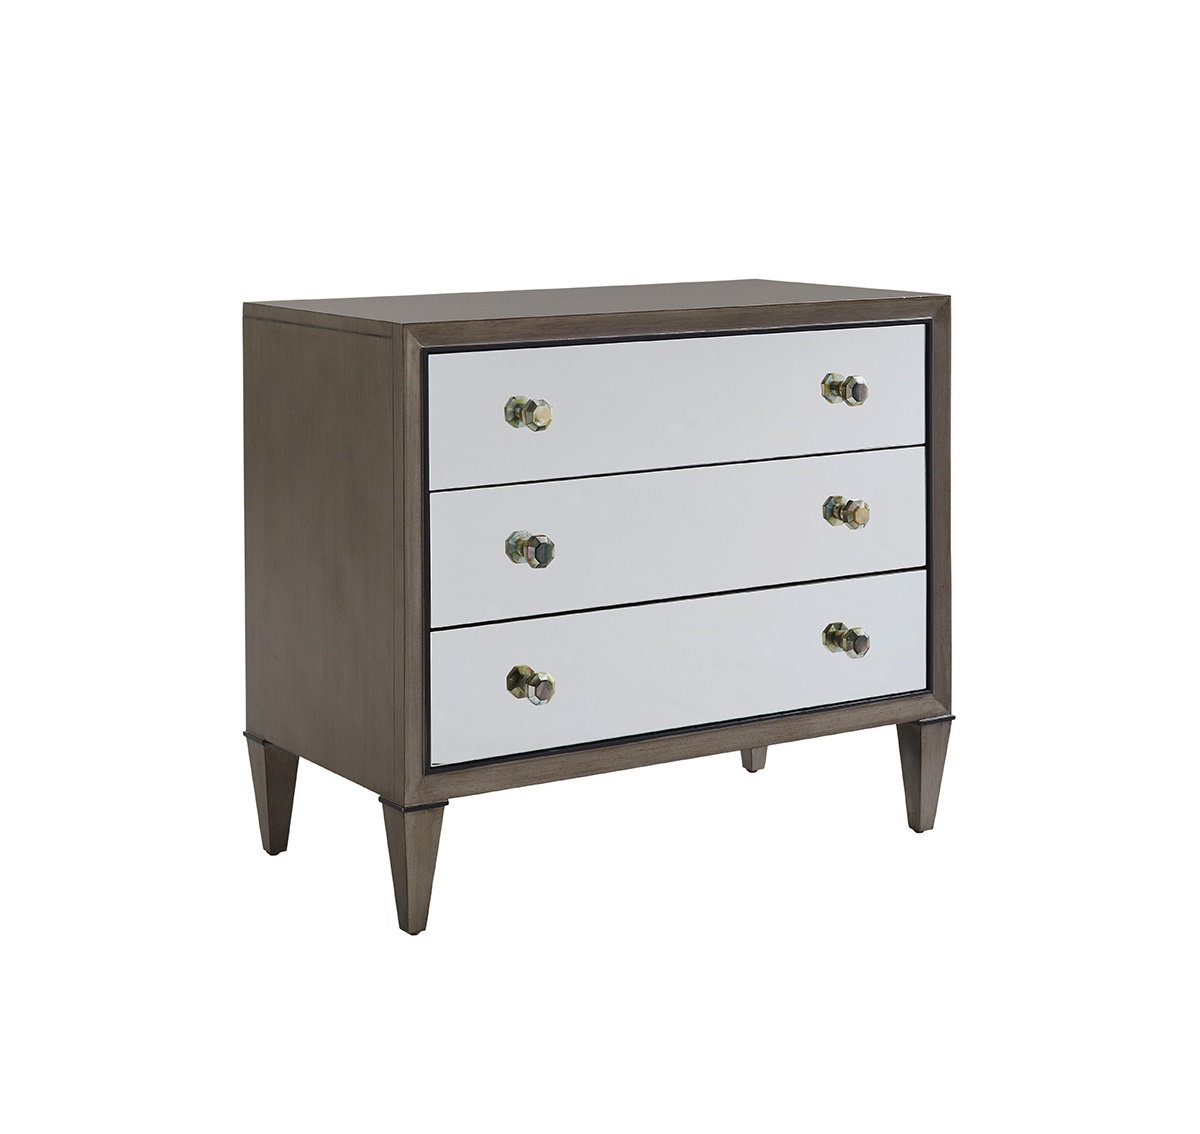 Ariana Divonne Mirorred Nightstand, Lexington Modern Nightstands For Sale